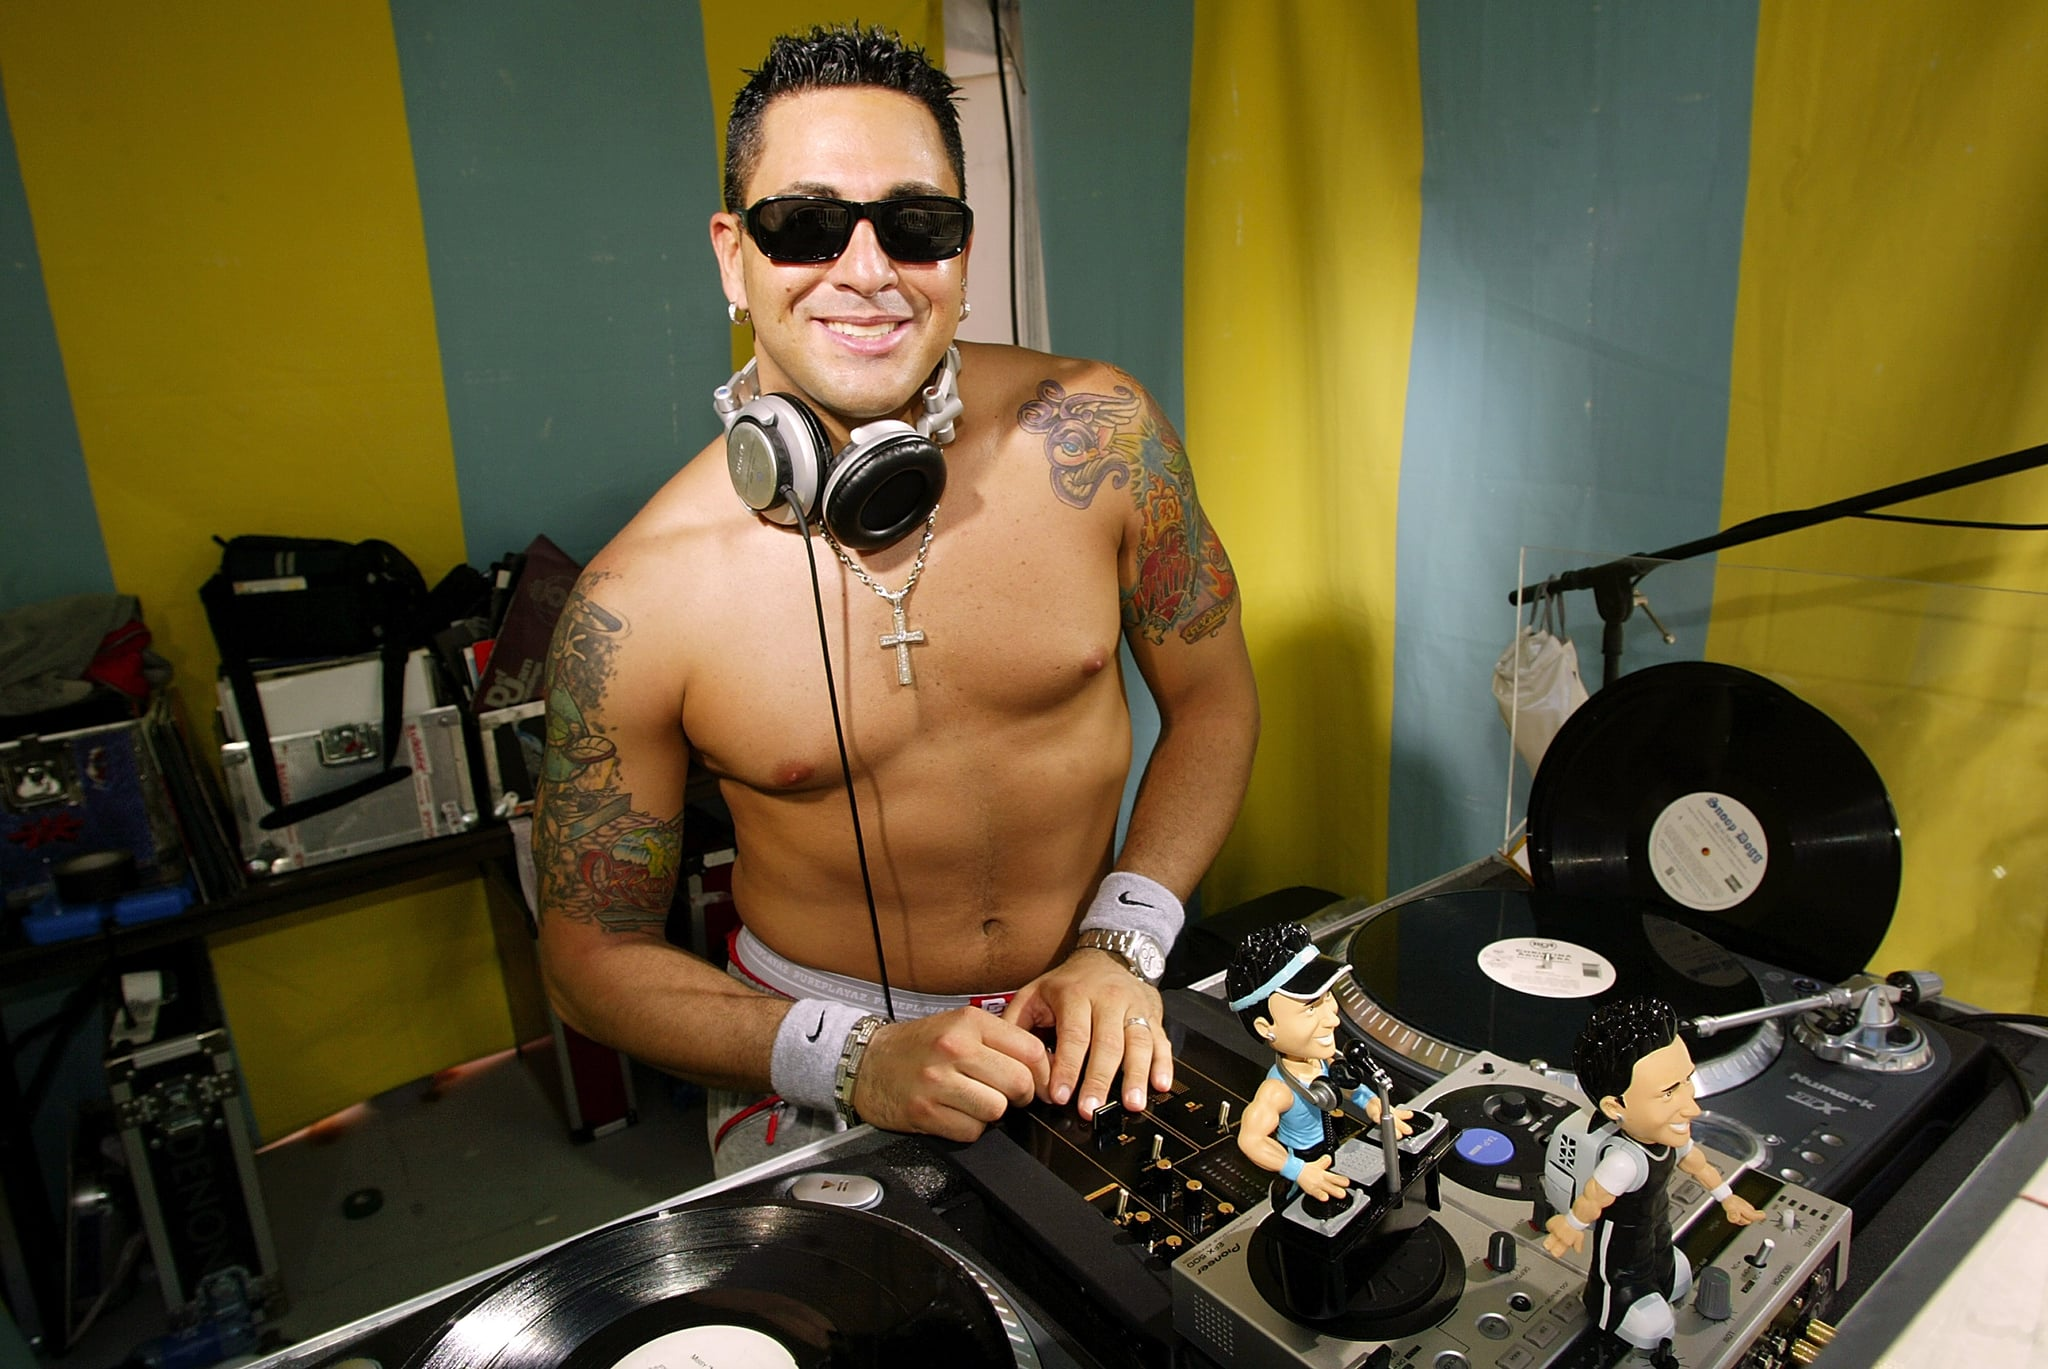 2003: Shirtless DJ Skribble spins on the ones and twos in Miami Beach.